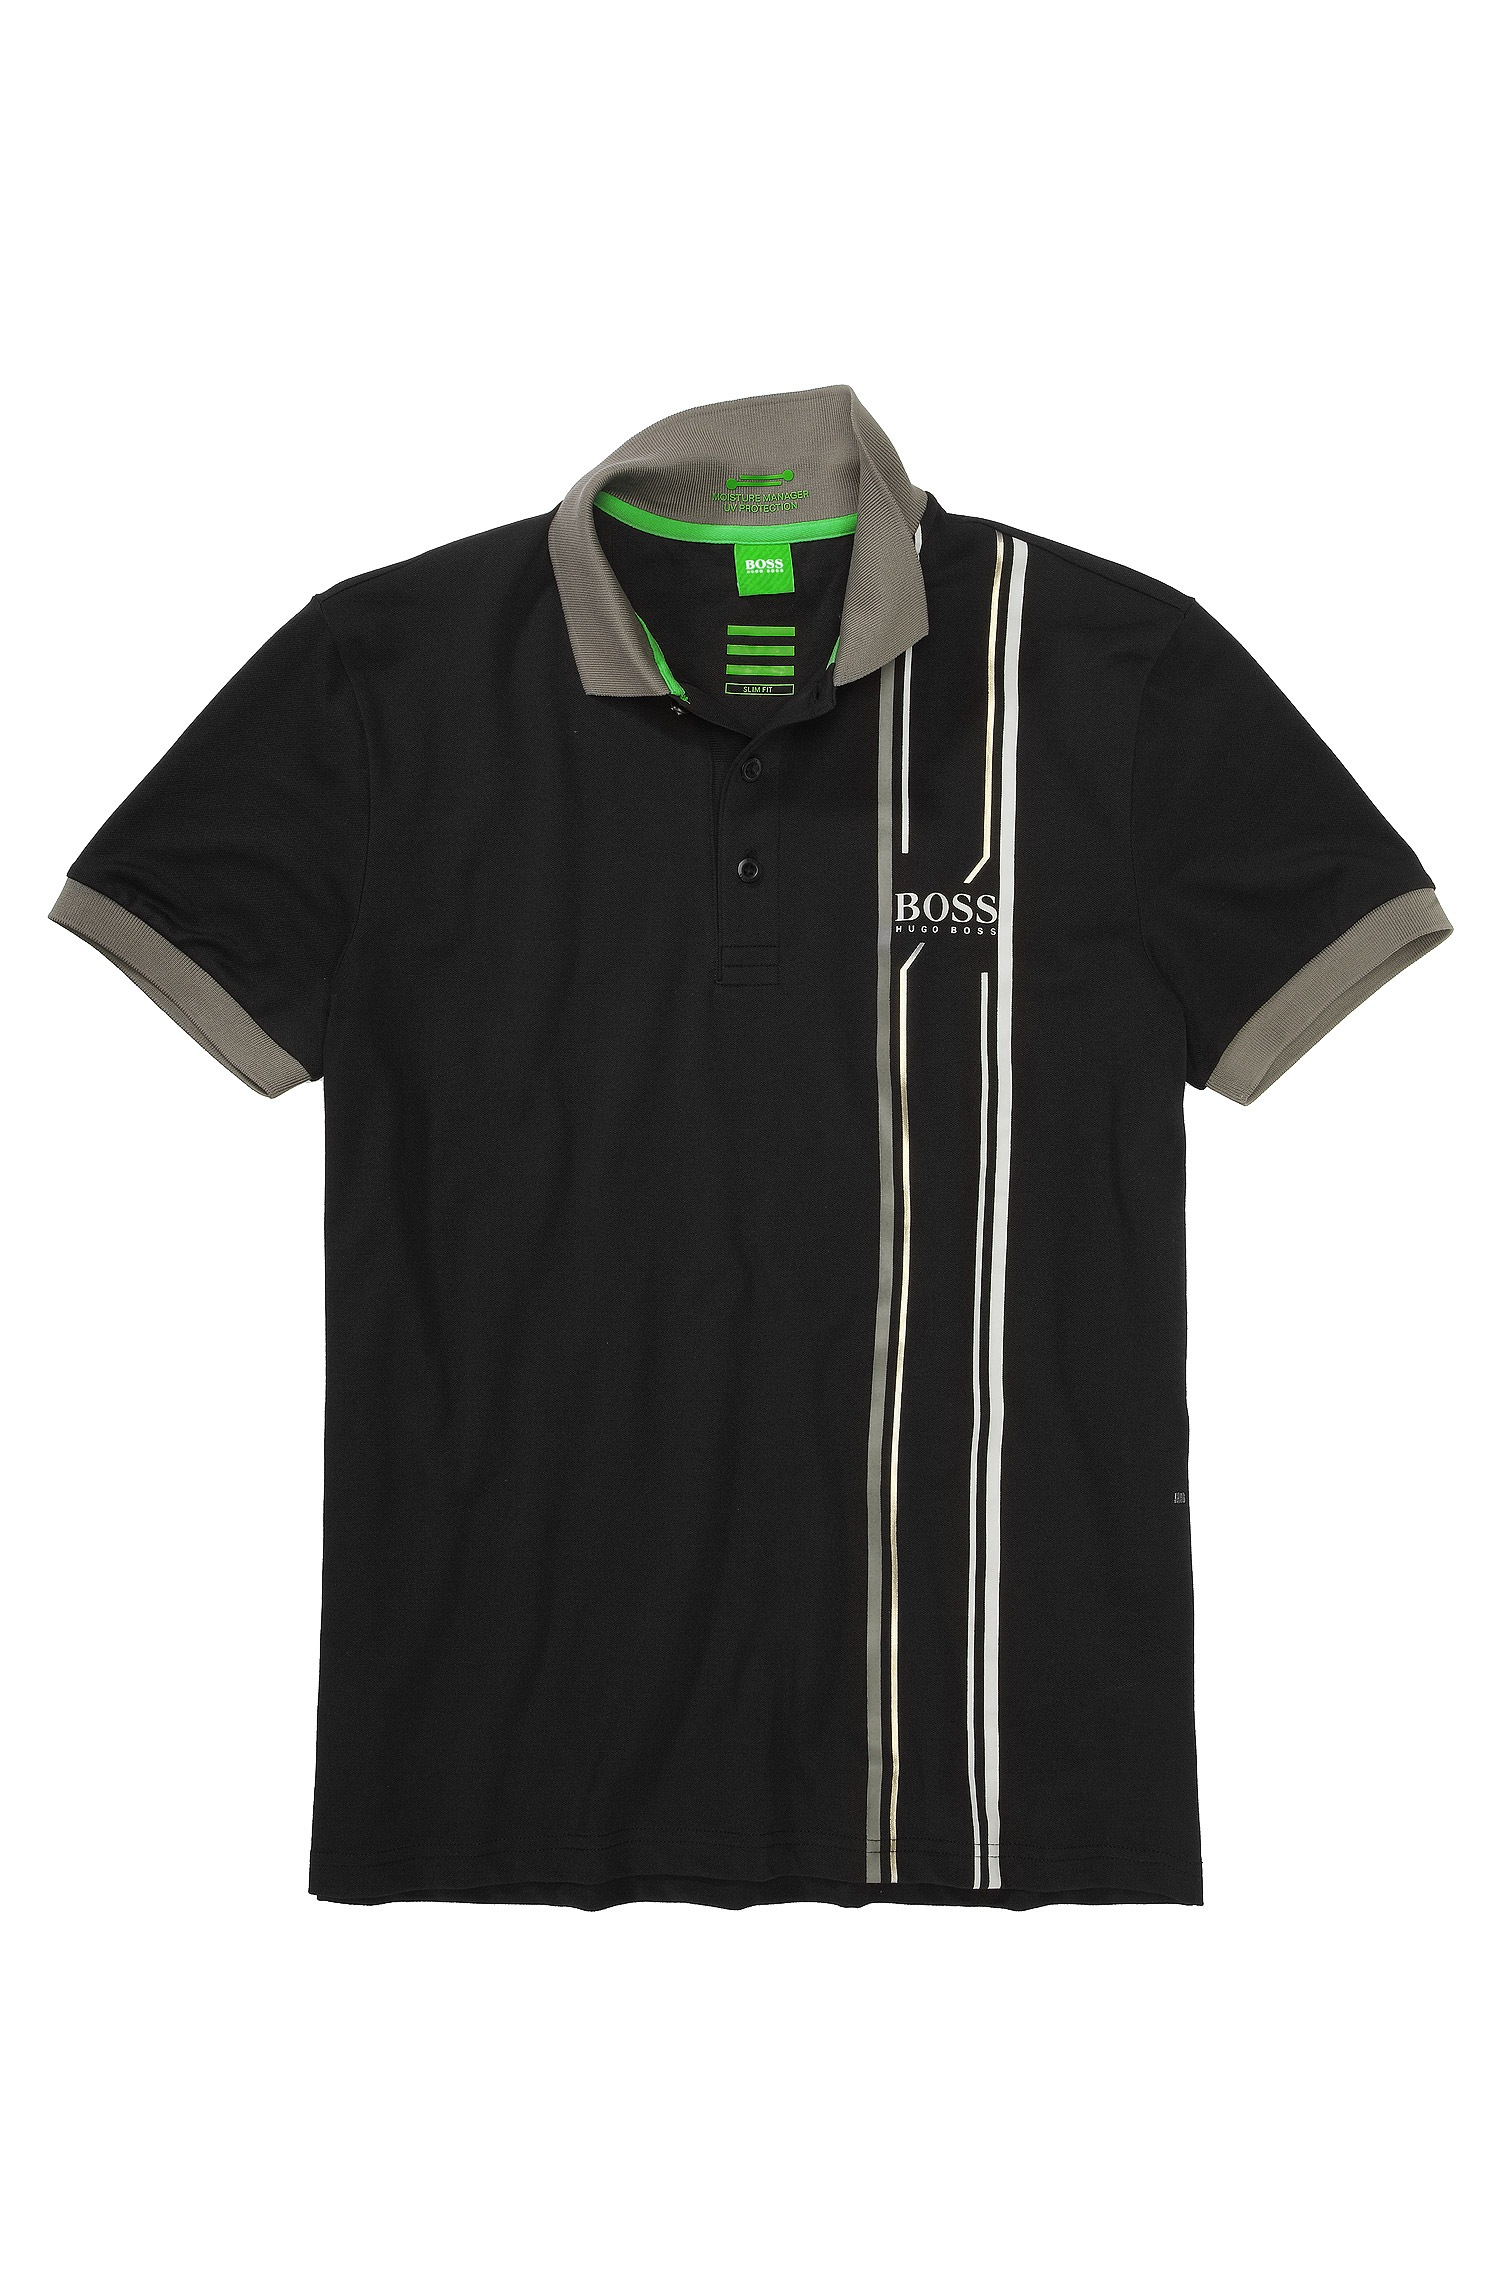 Boss green slim fit golf polo shirt 39 paule pro 39 in black for Slim fit golf shirts